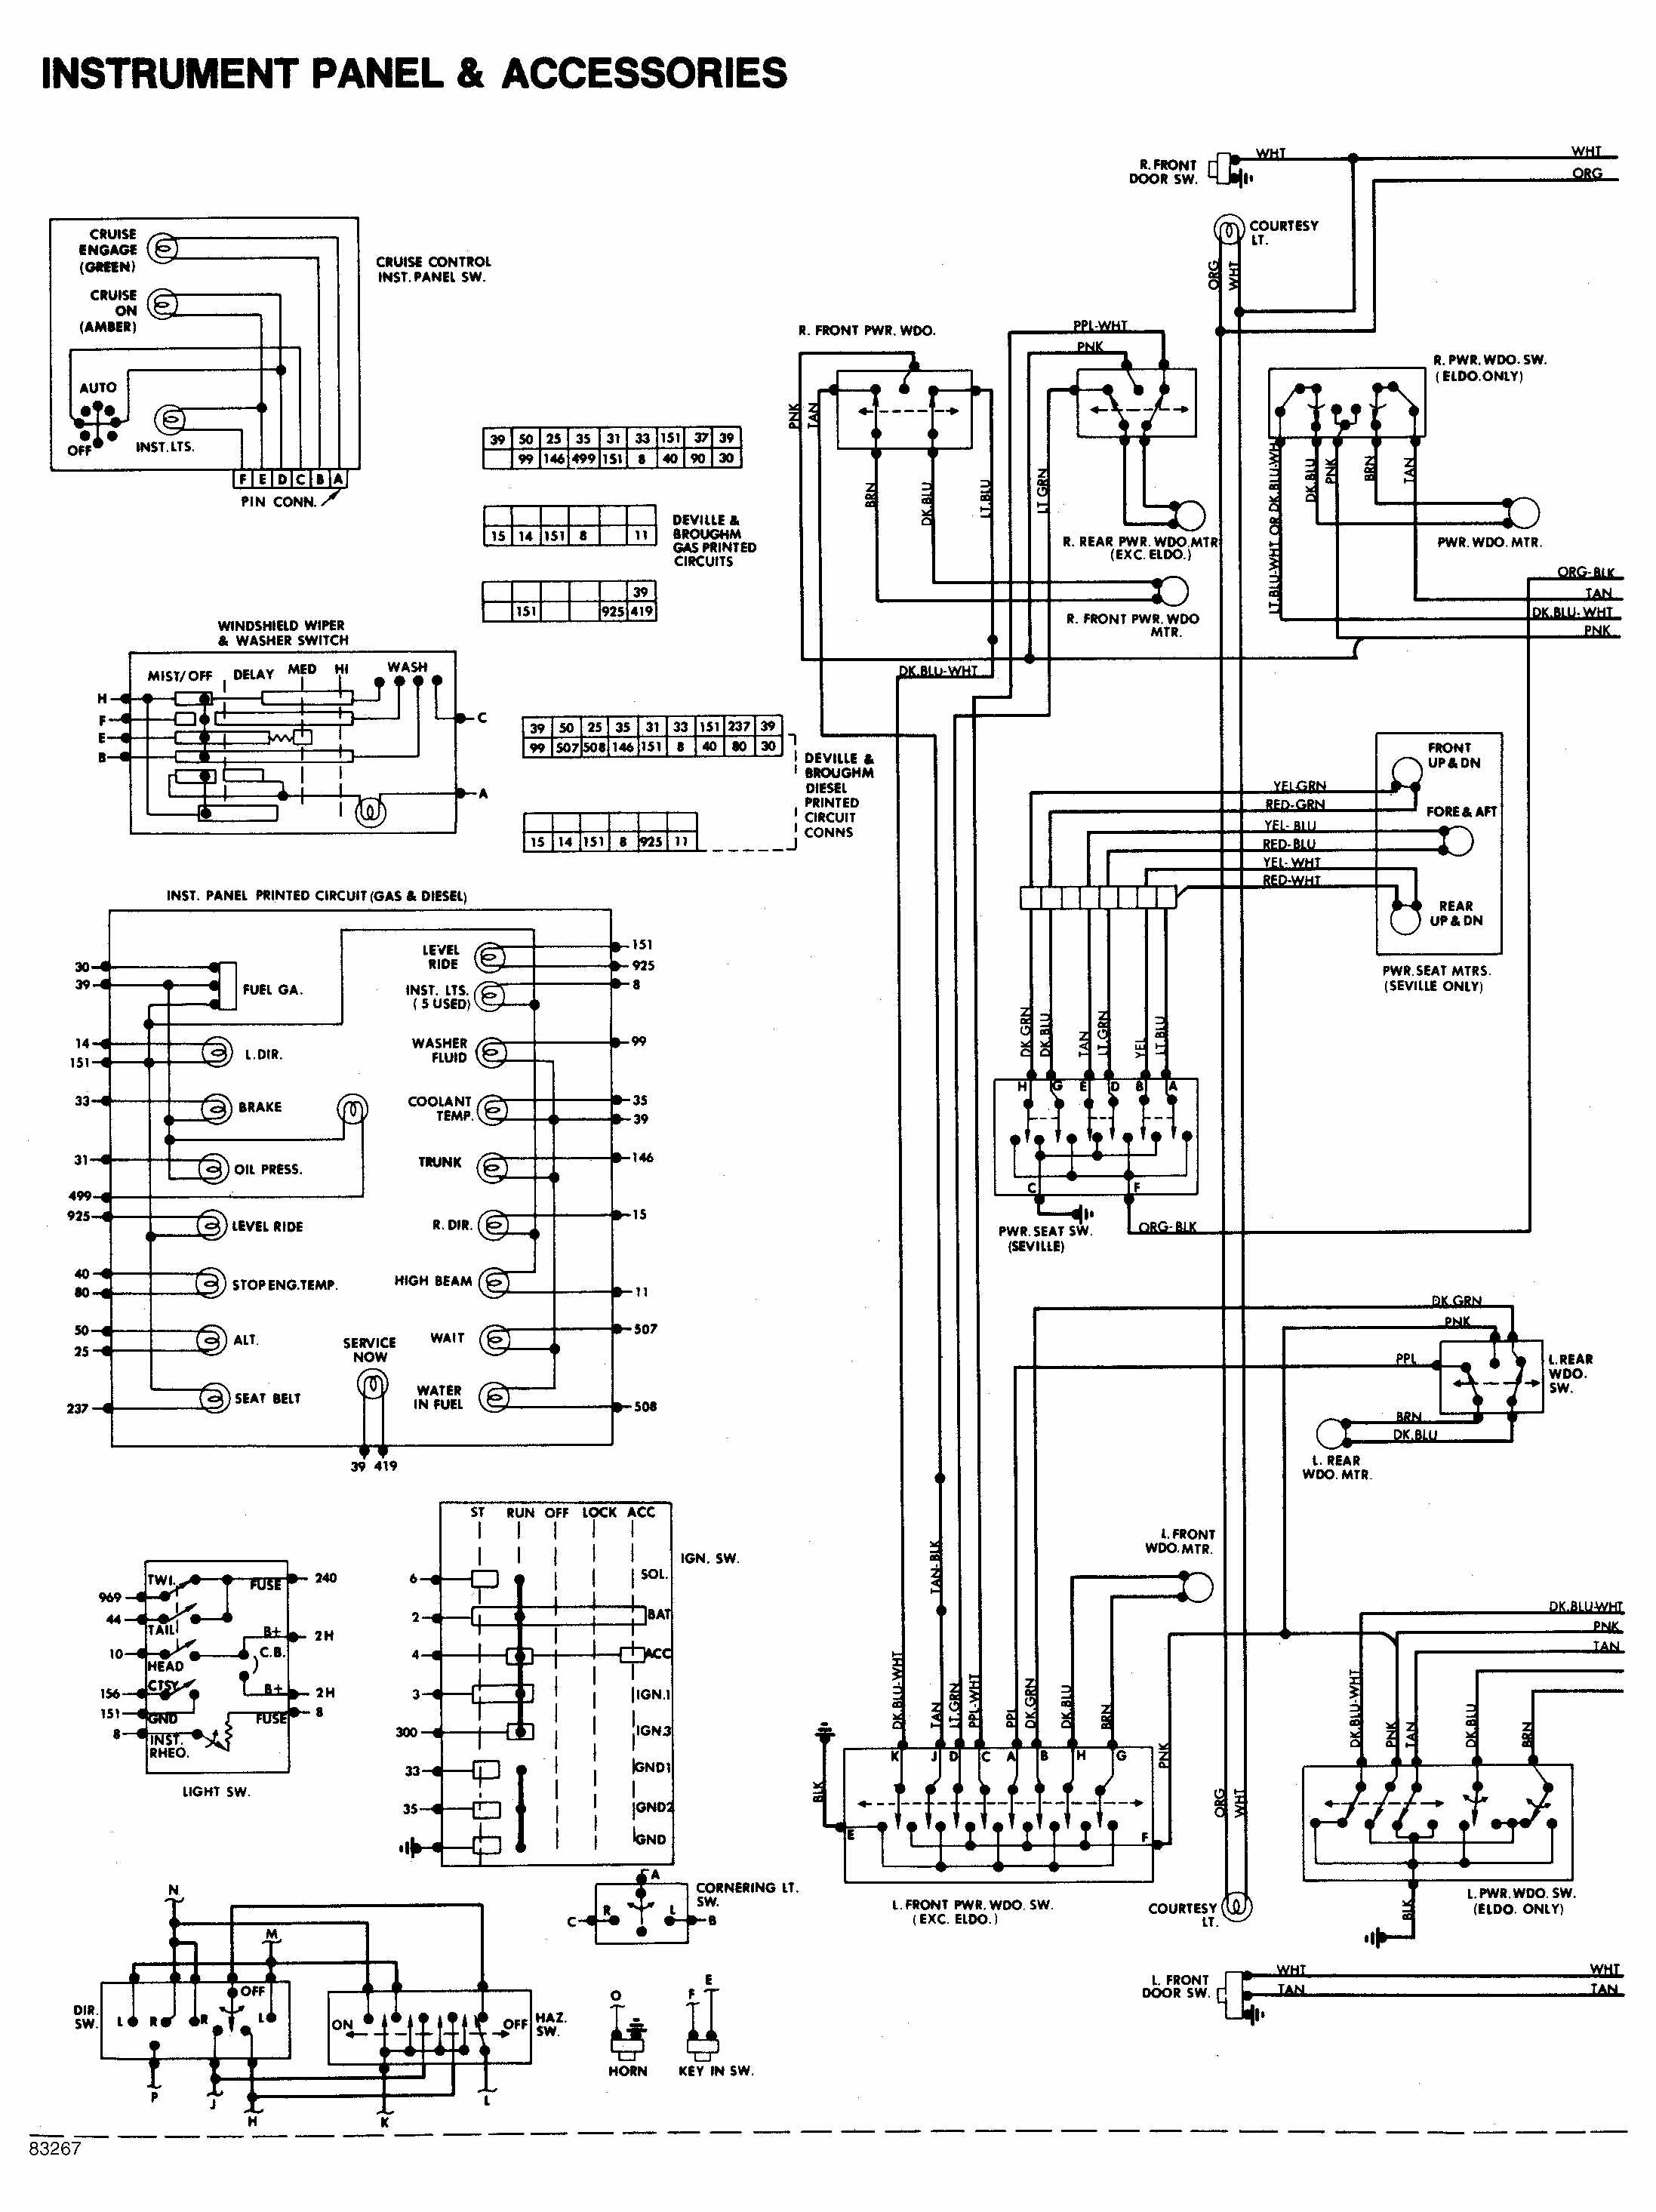 instrument panel and accessories wiring diagram of 1984 cadillac deville chevy diagrams GM Alternator Wiring Diagram at panicattacktreatment.co